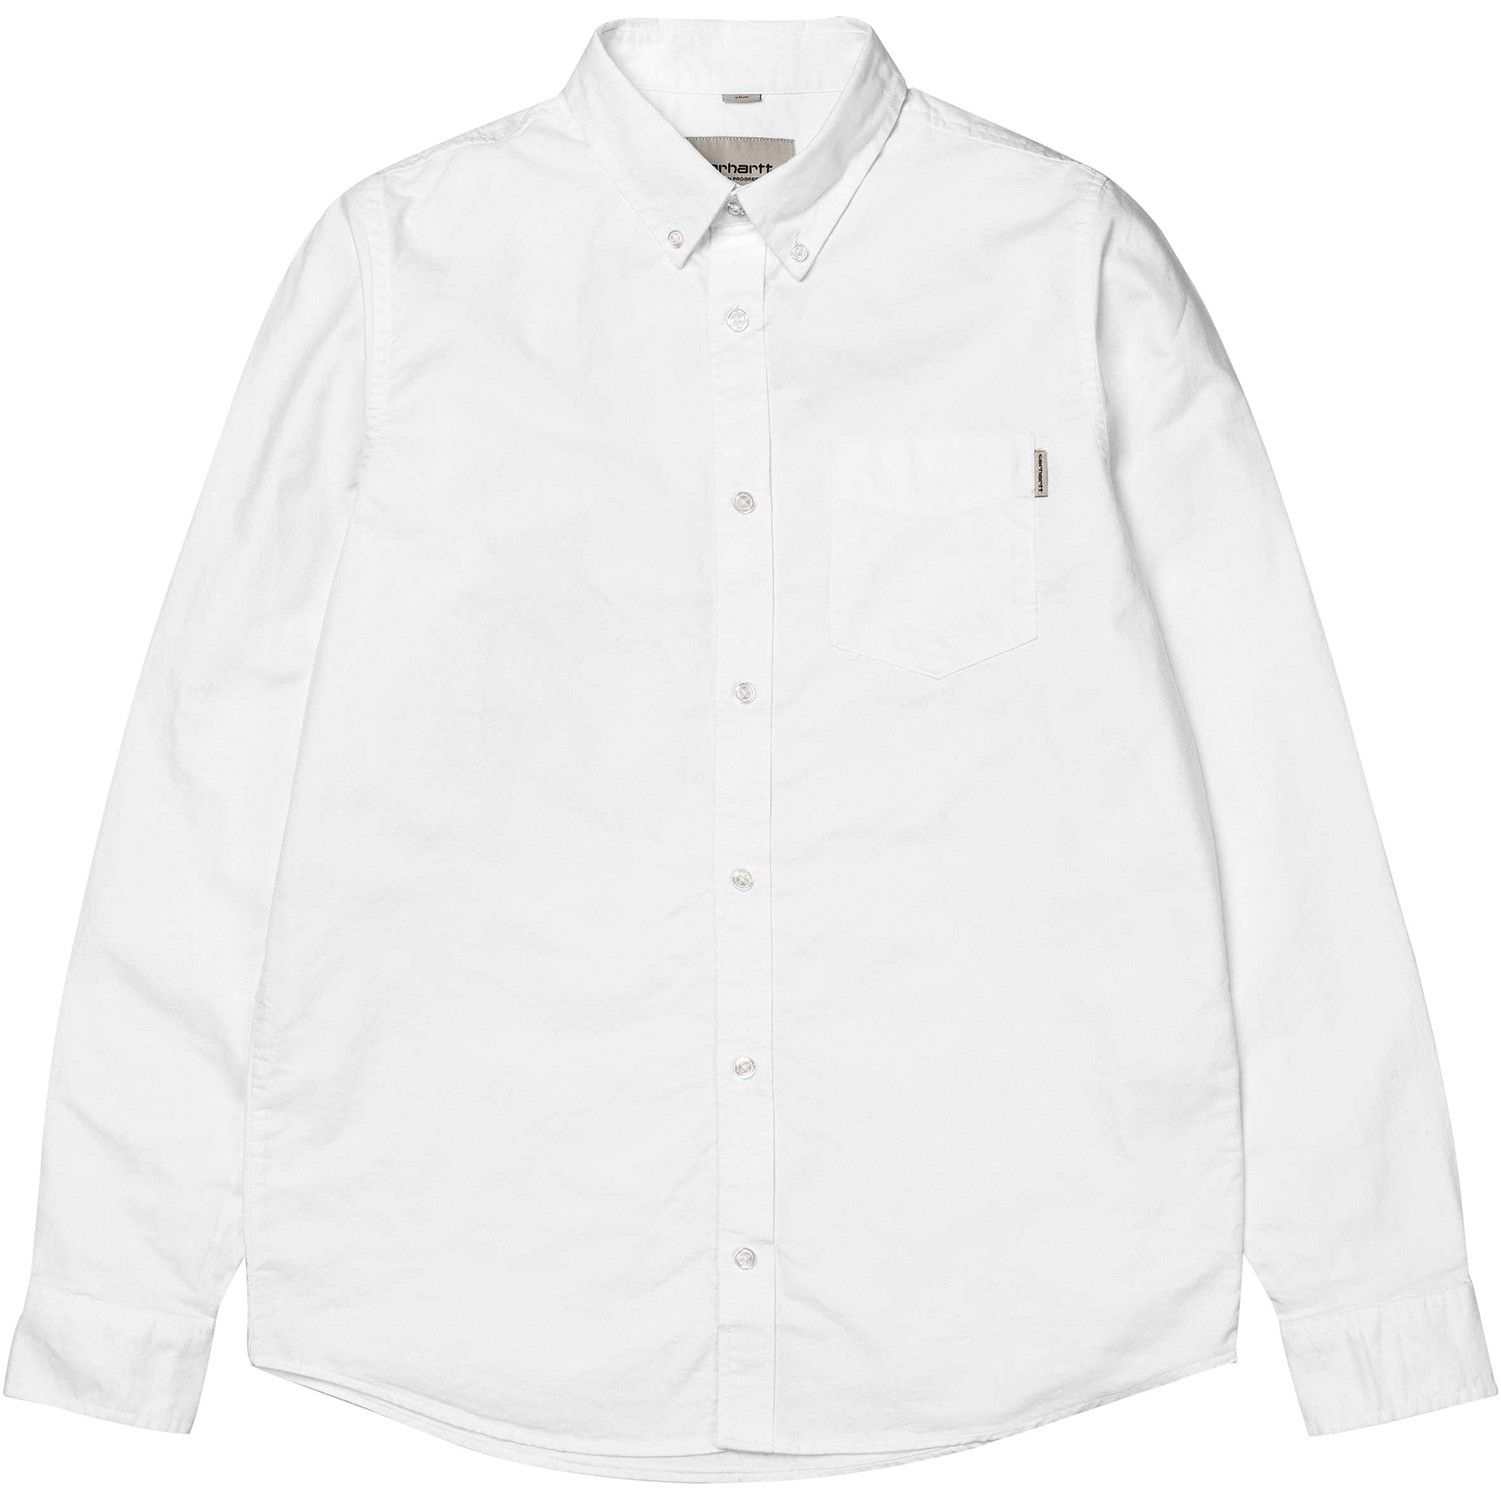 1501x1501 Carhartt Button Down Pocket Shirt In White For Men